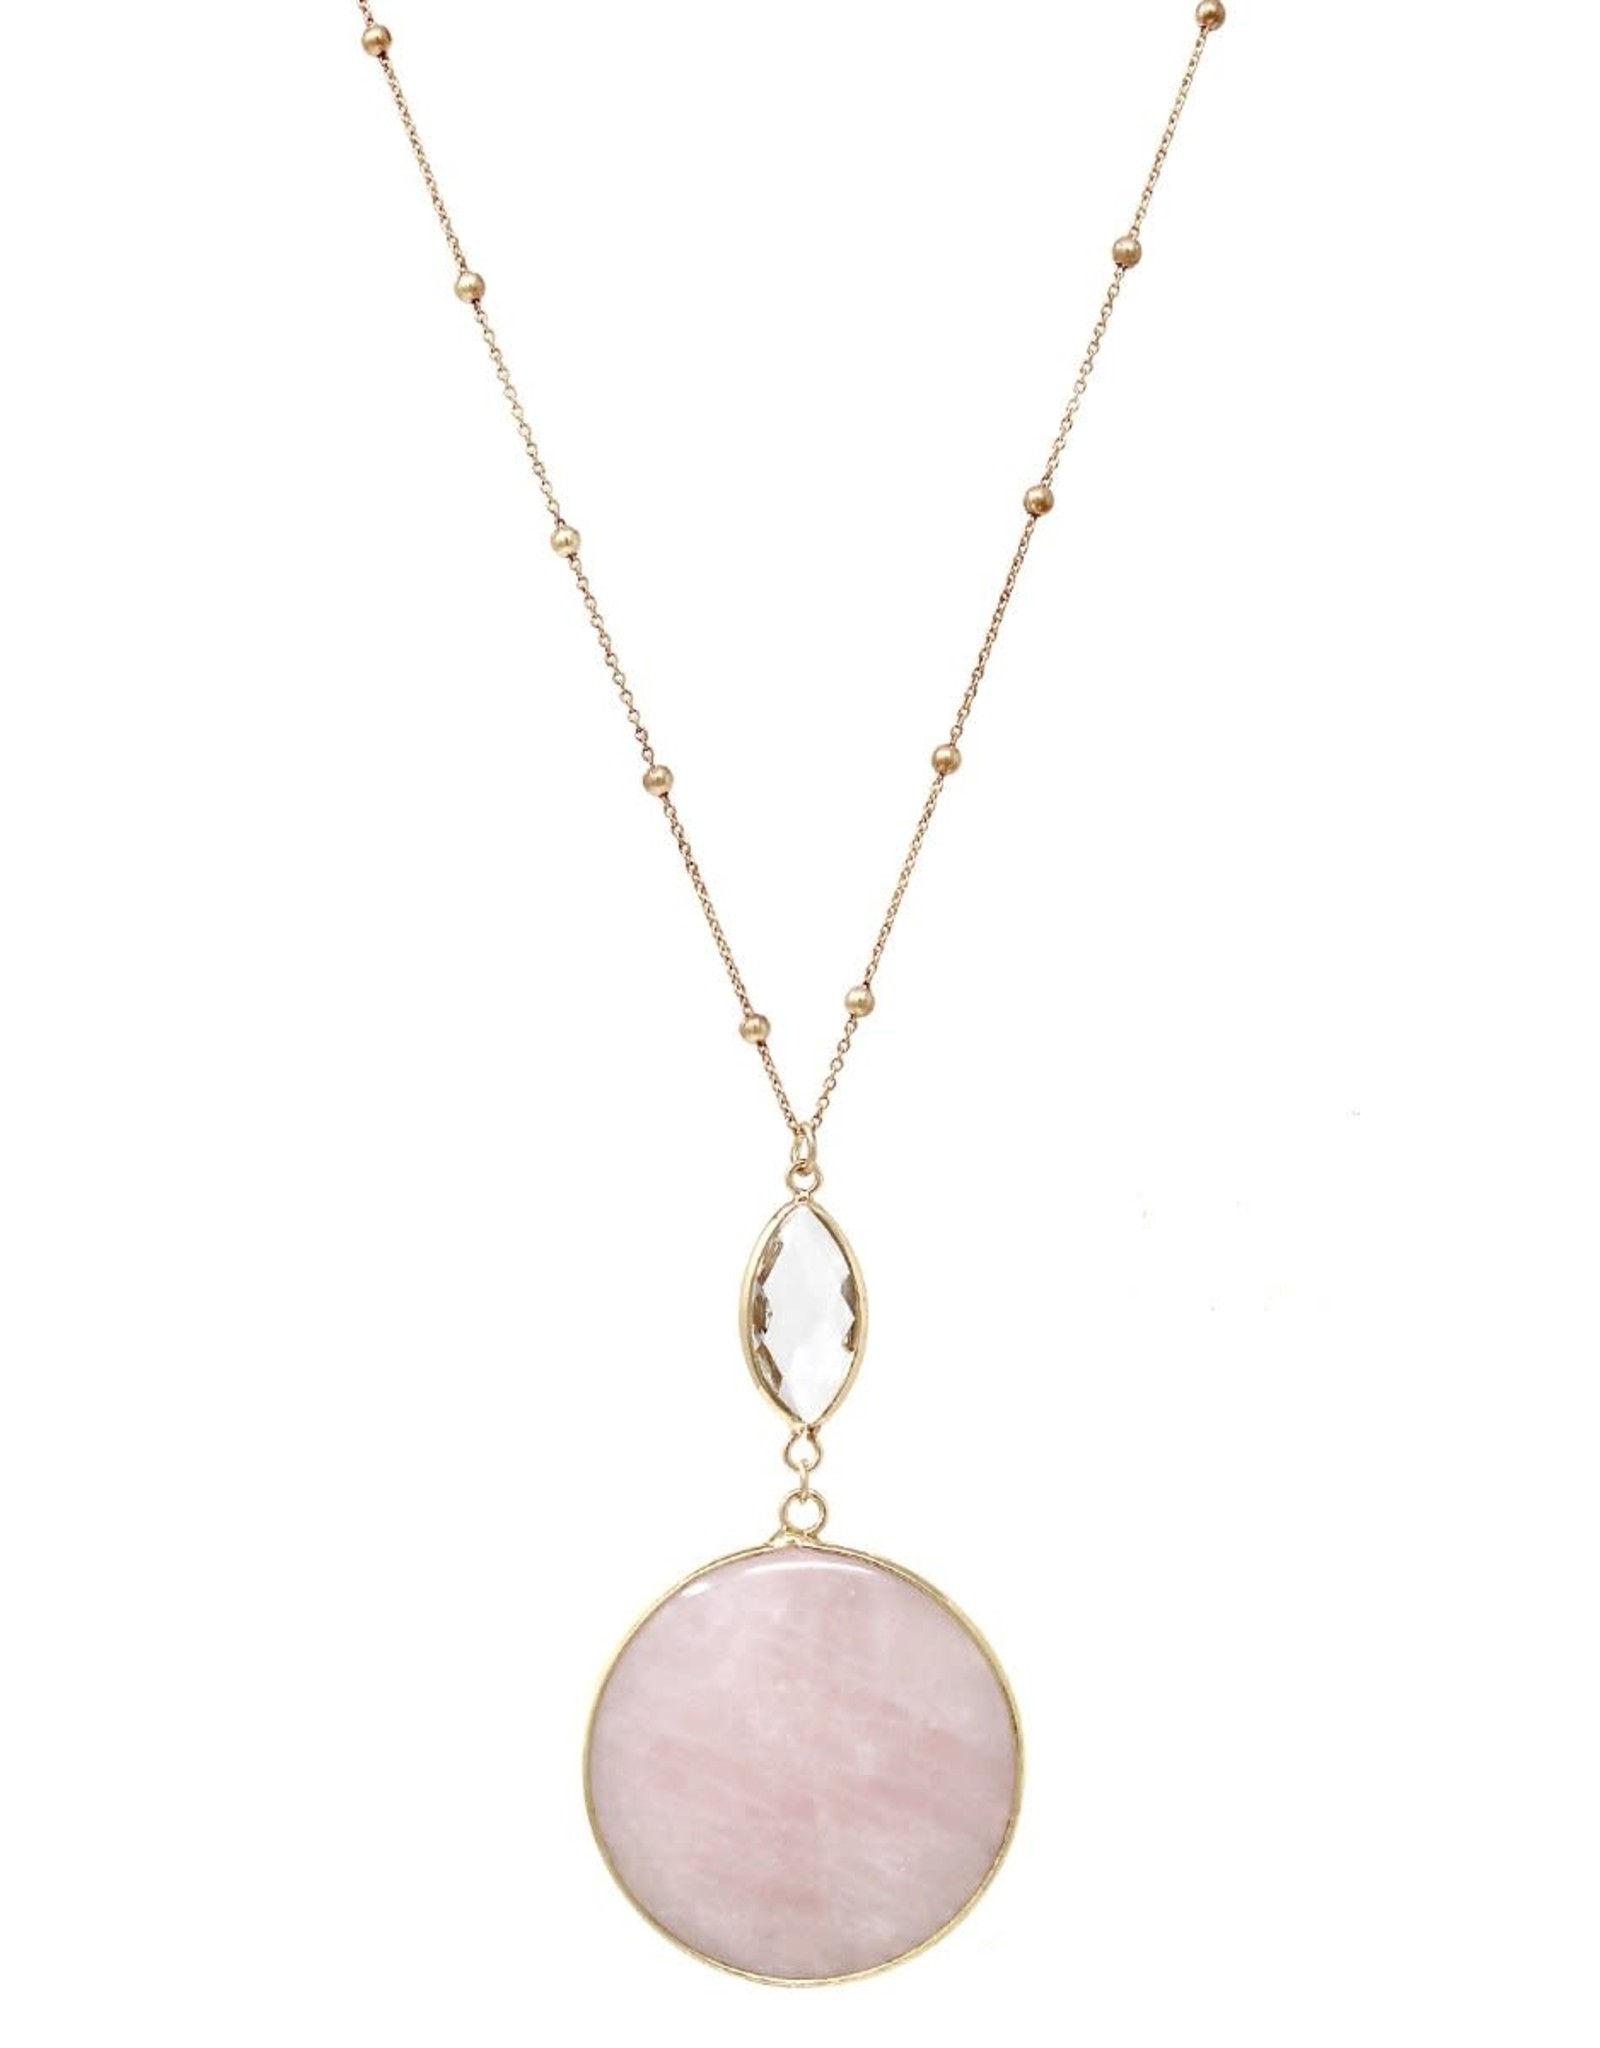 Marquise Glass Natural Stone Disc Pendant Ball Chain Long Necklace - Pink